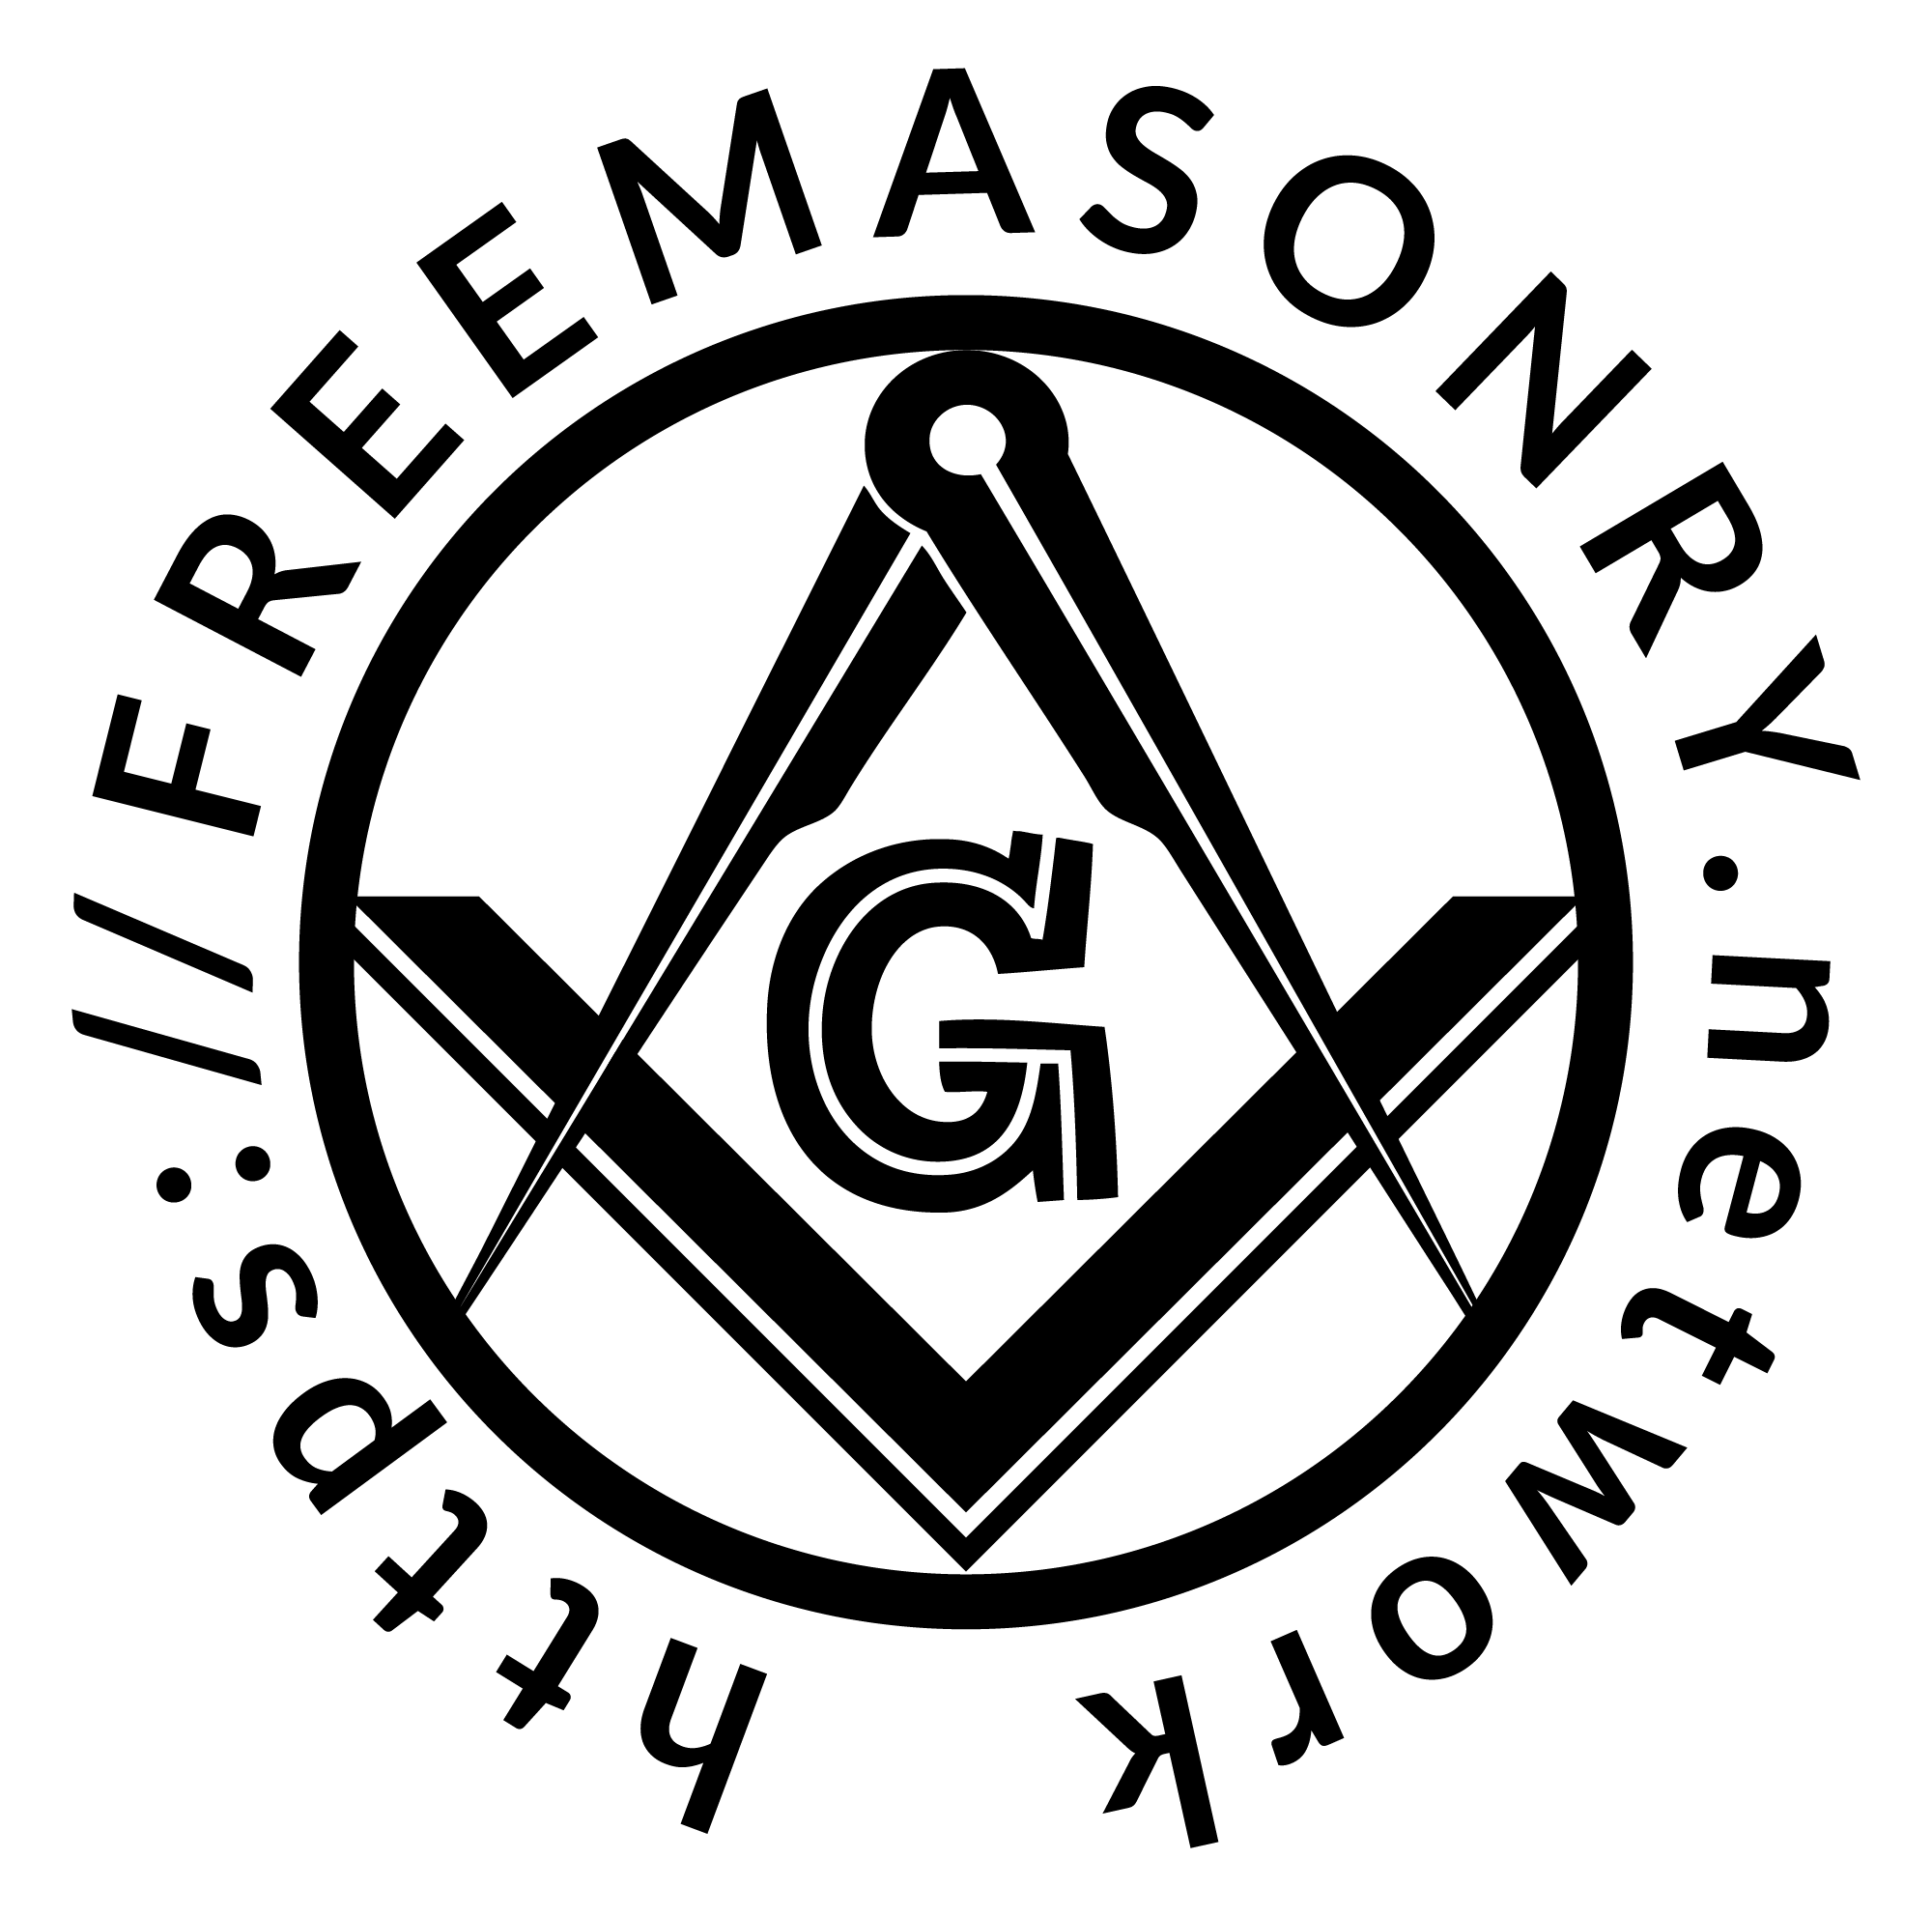 PERSECUTION OF FREEMASONRY - Mackey's Encyclopedia of Freemasonry